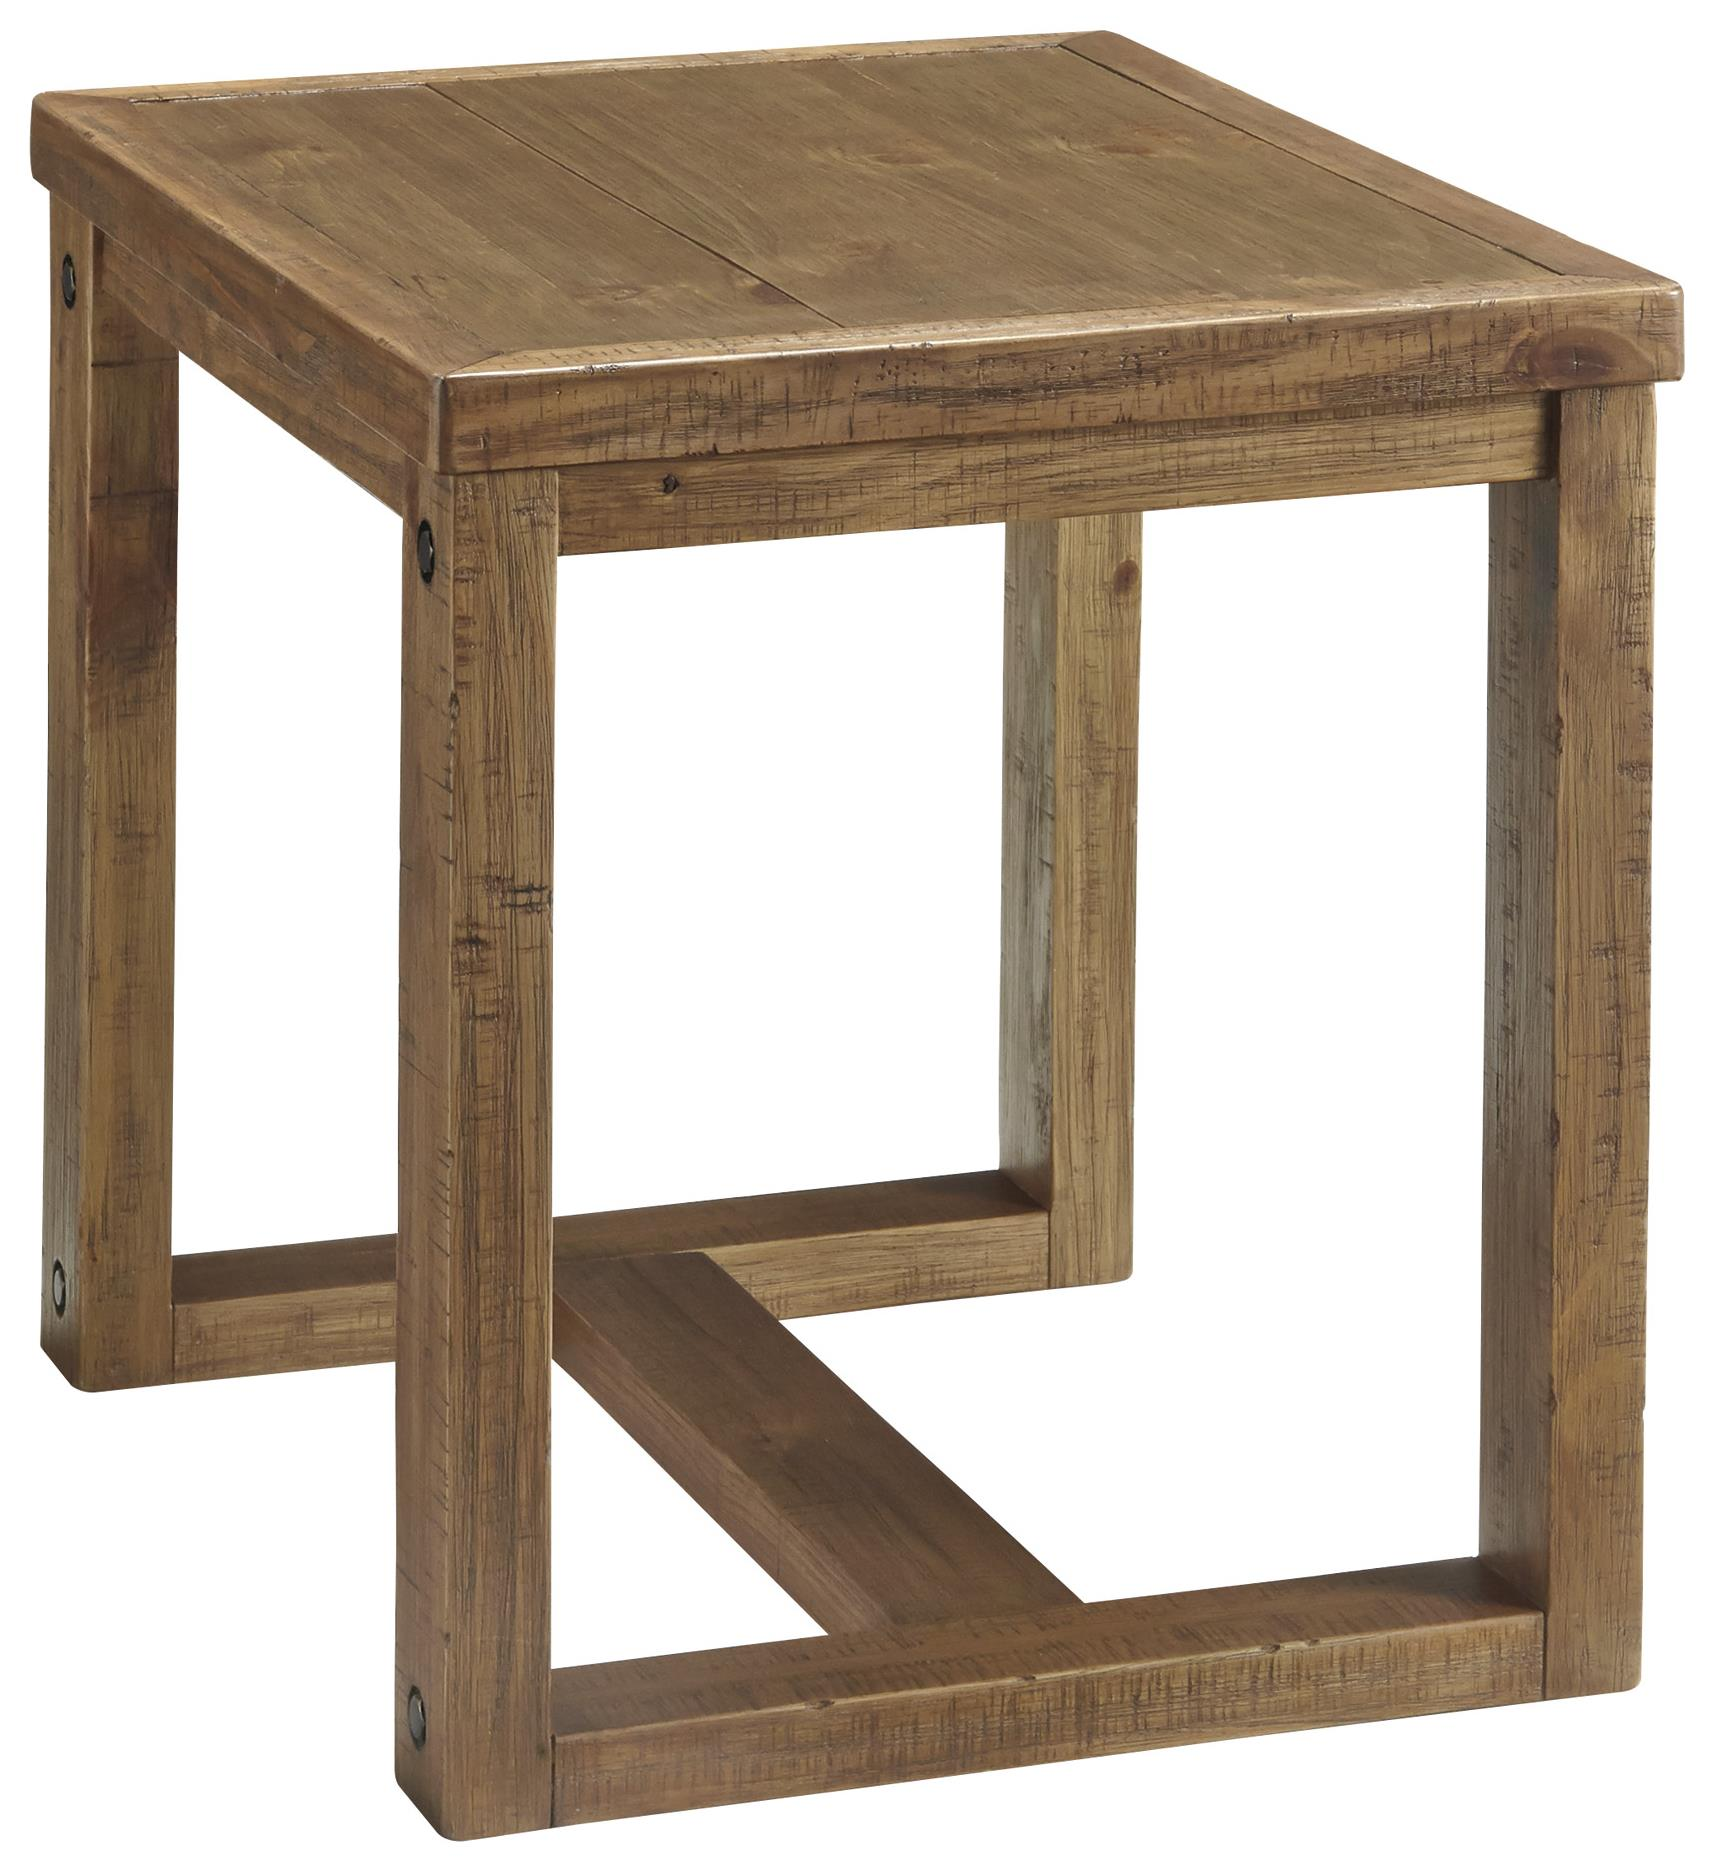 Signature Design by Ashley Tamilo Chair Side End Table - Item Number: T715-7